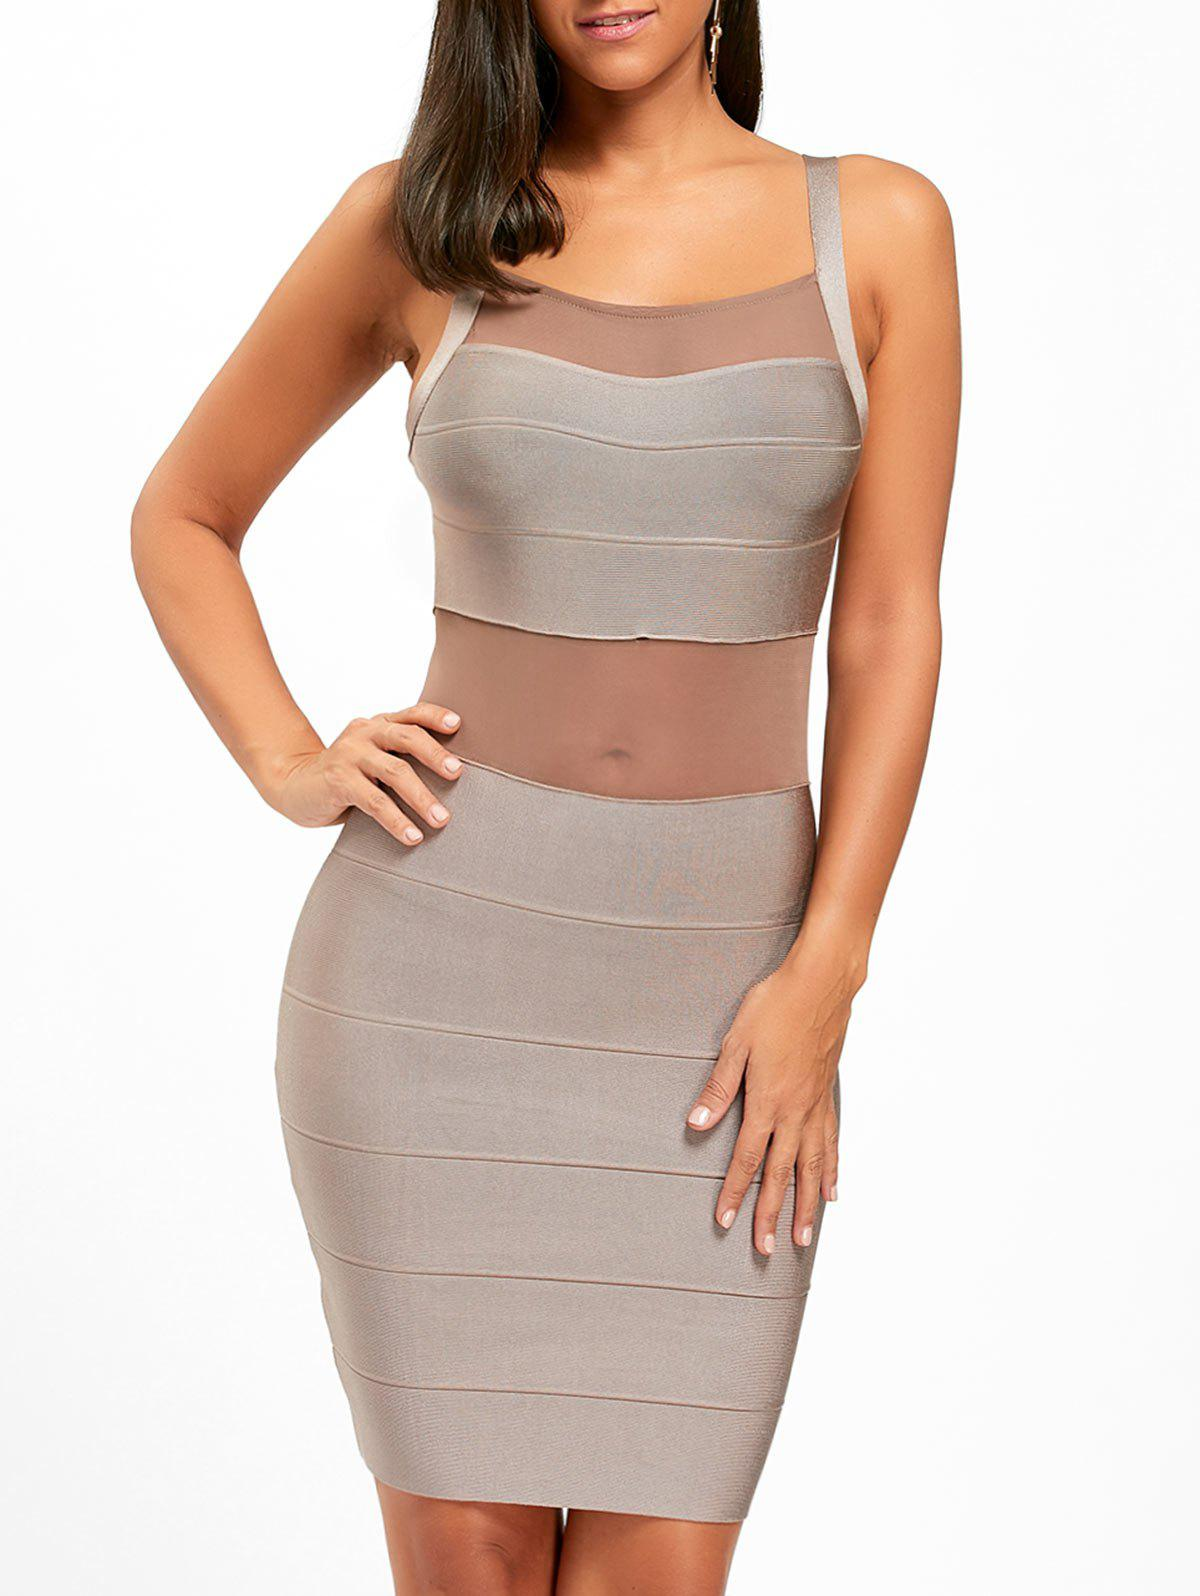 New Mesh Insert Back Cut Out Bodycon Bandage Dress